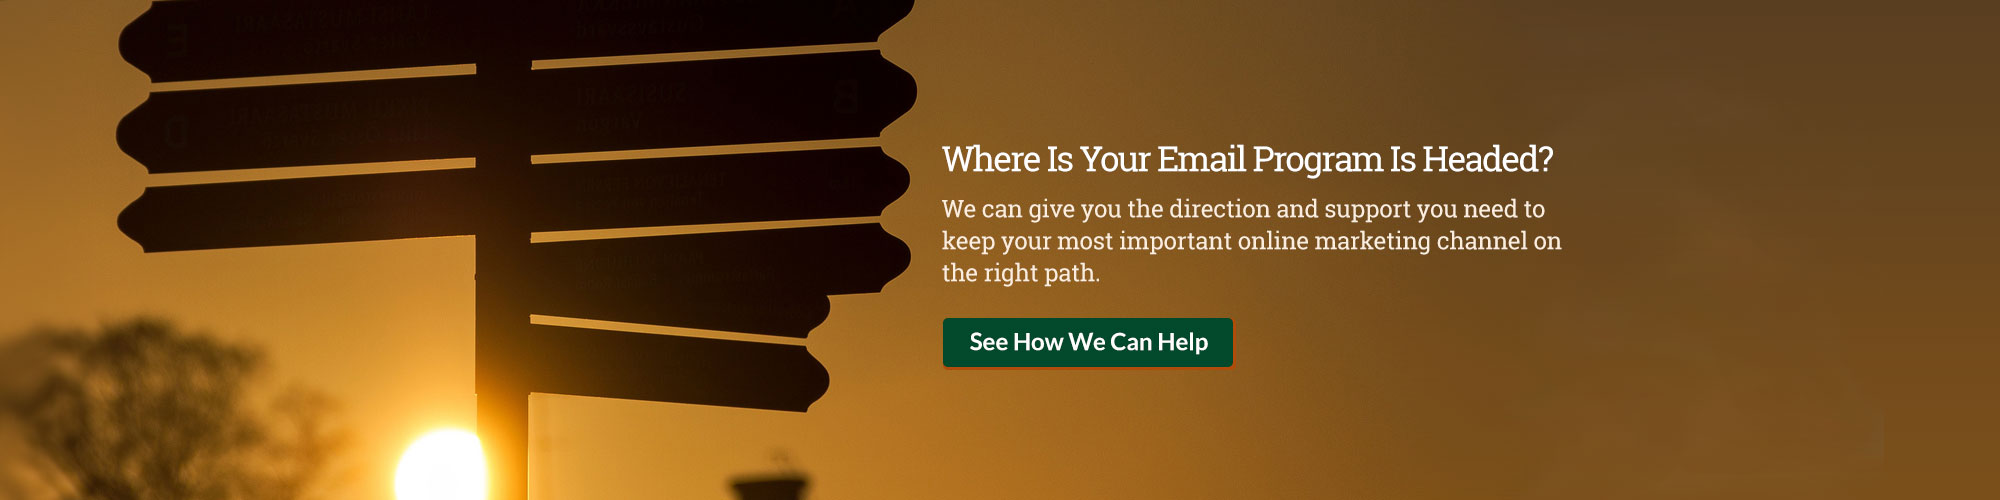 Where is your email program headed?